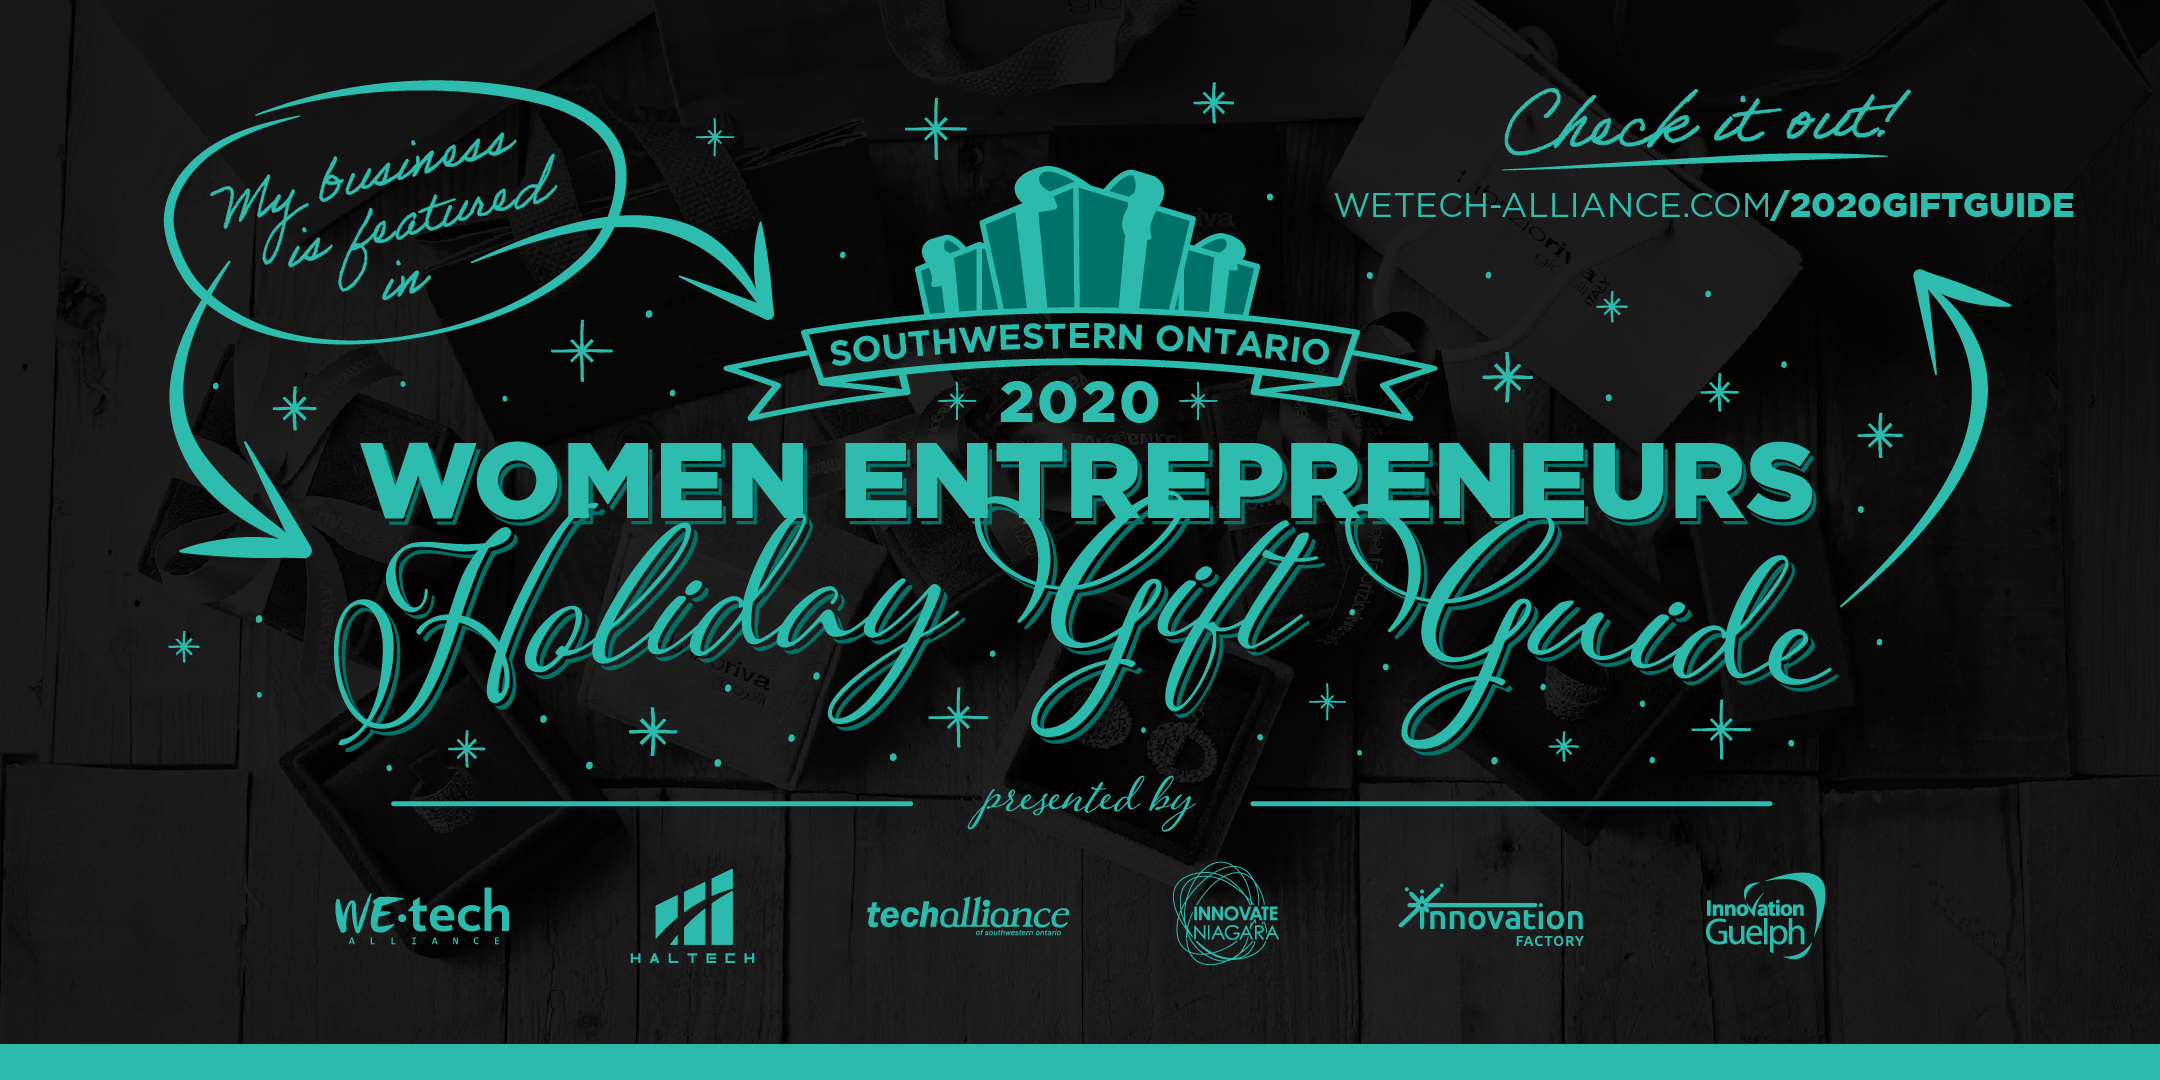 WEtech Alliance Launches Southwestern Ontario Women Entrepreneurs Holiday Gift Guide